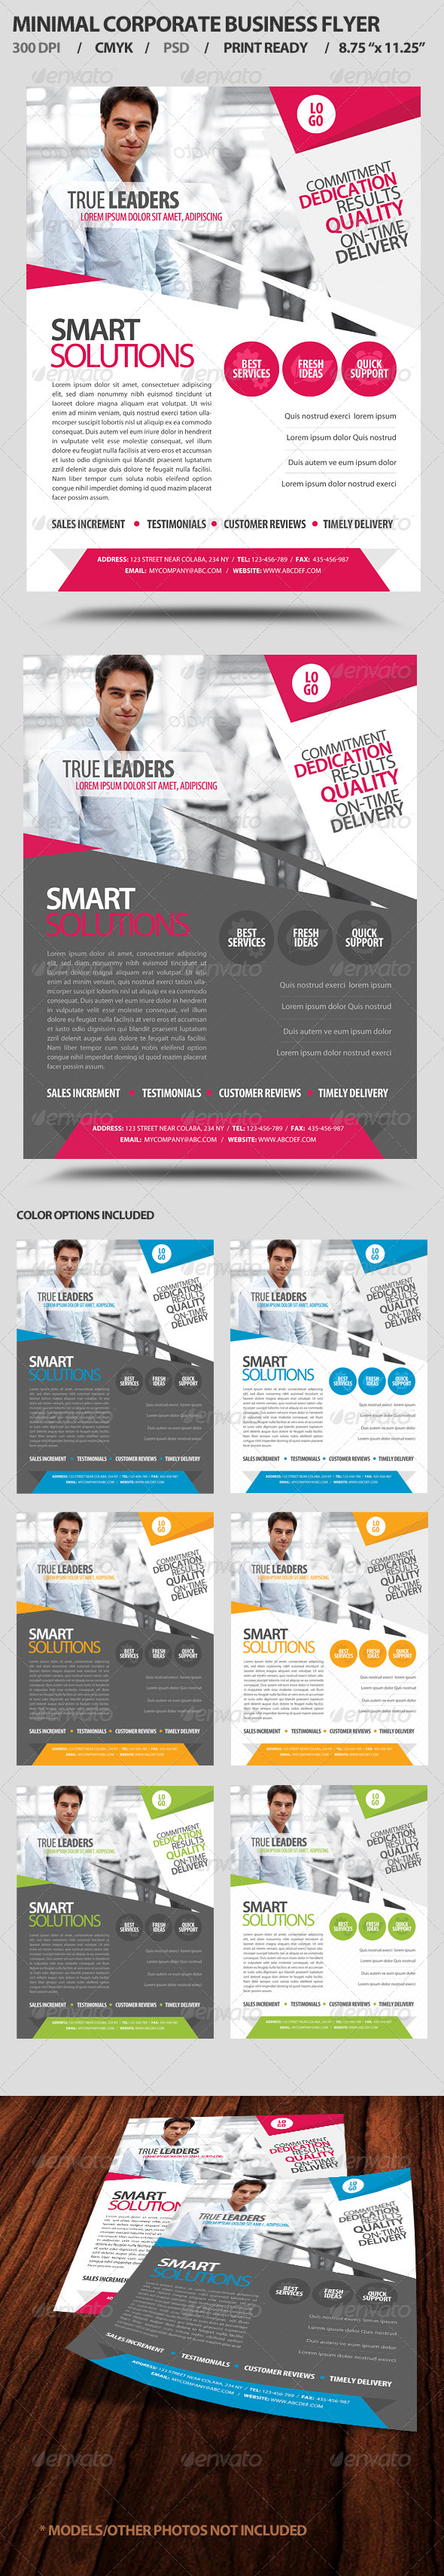 Minimal Corporate Business Promotion Flyer - Corporate Flyers